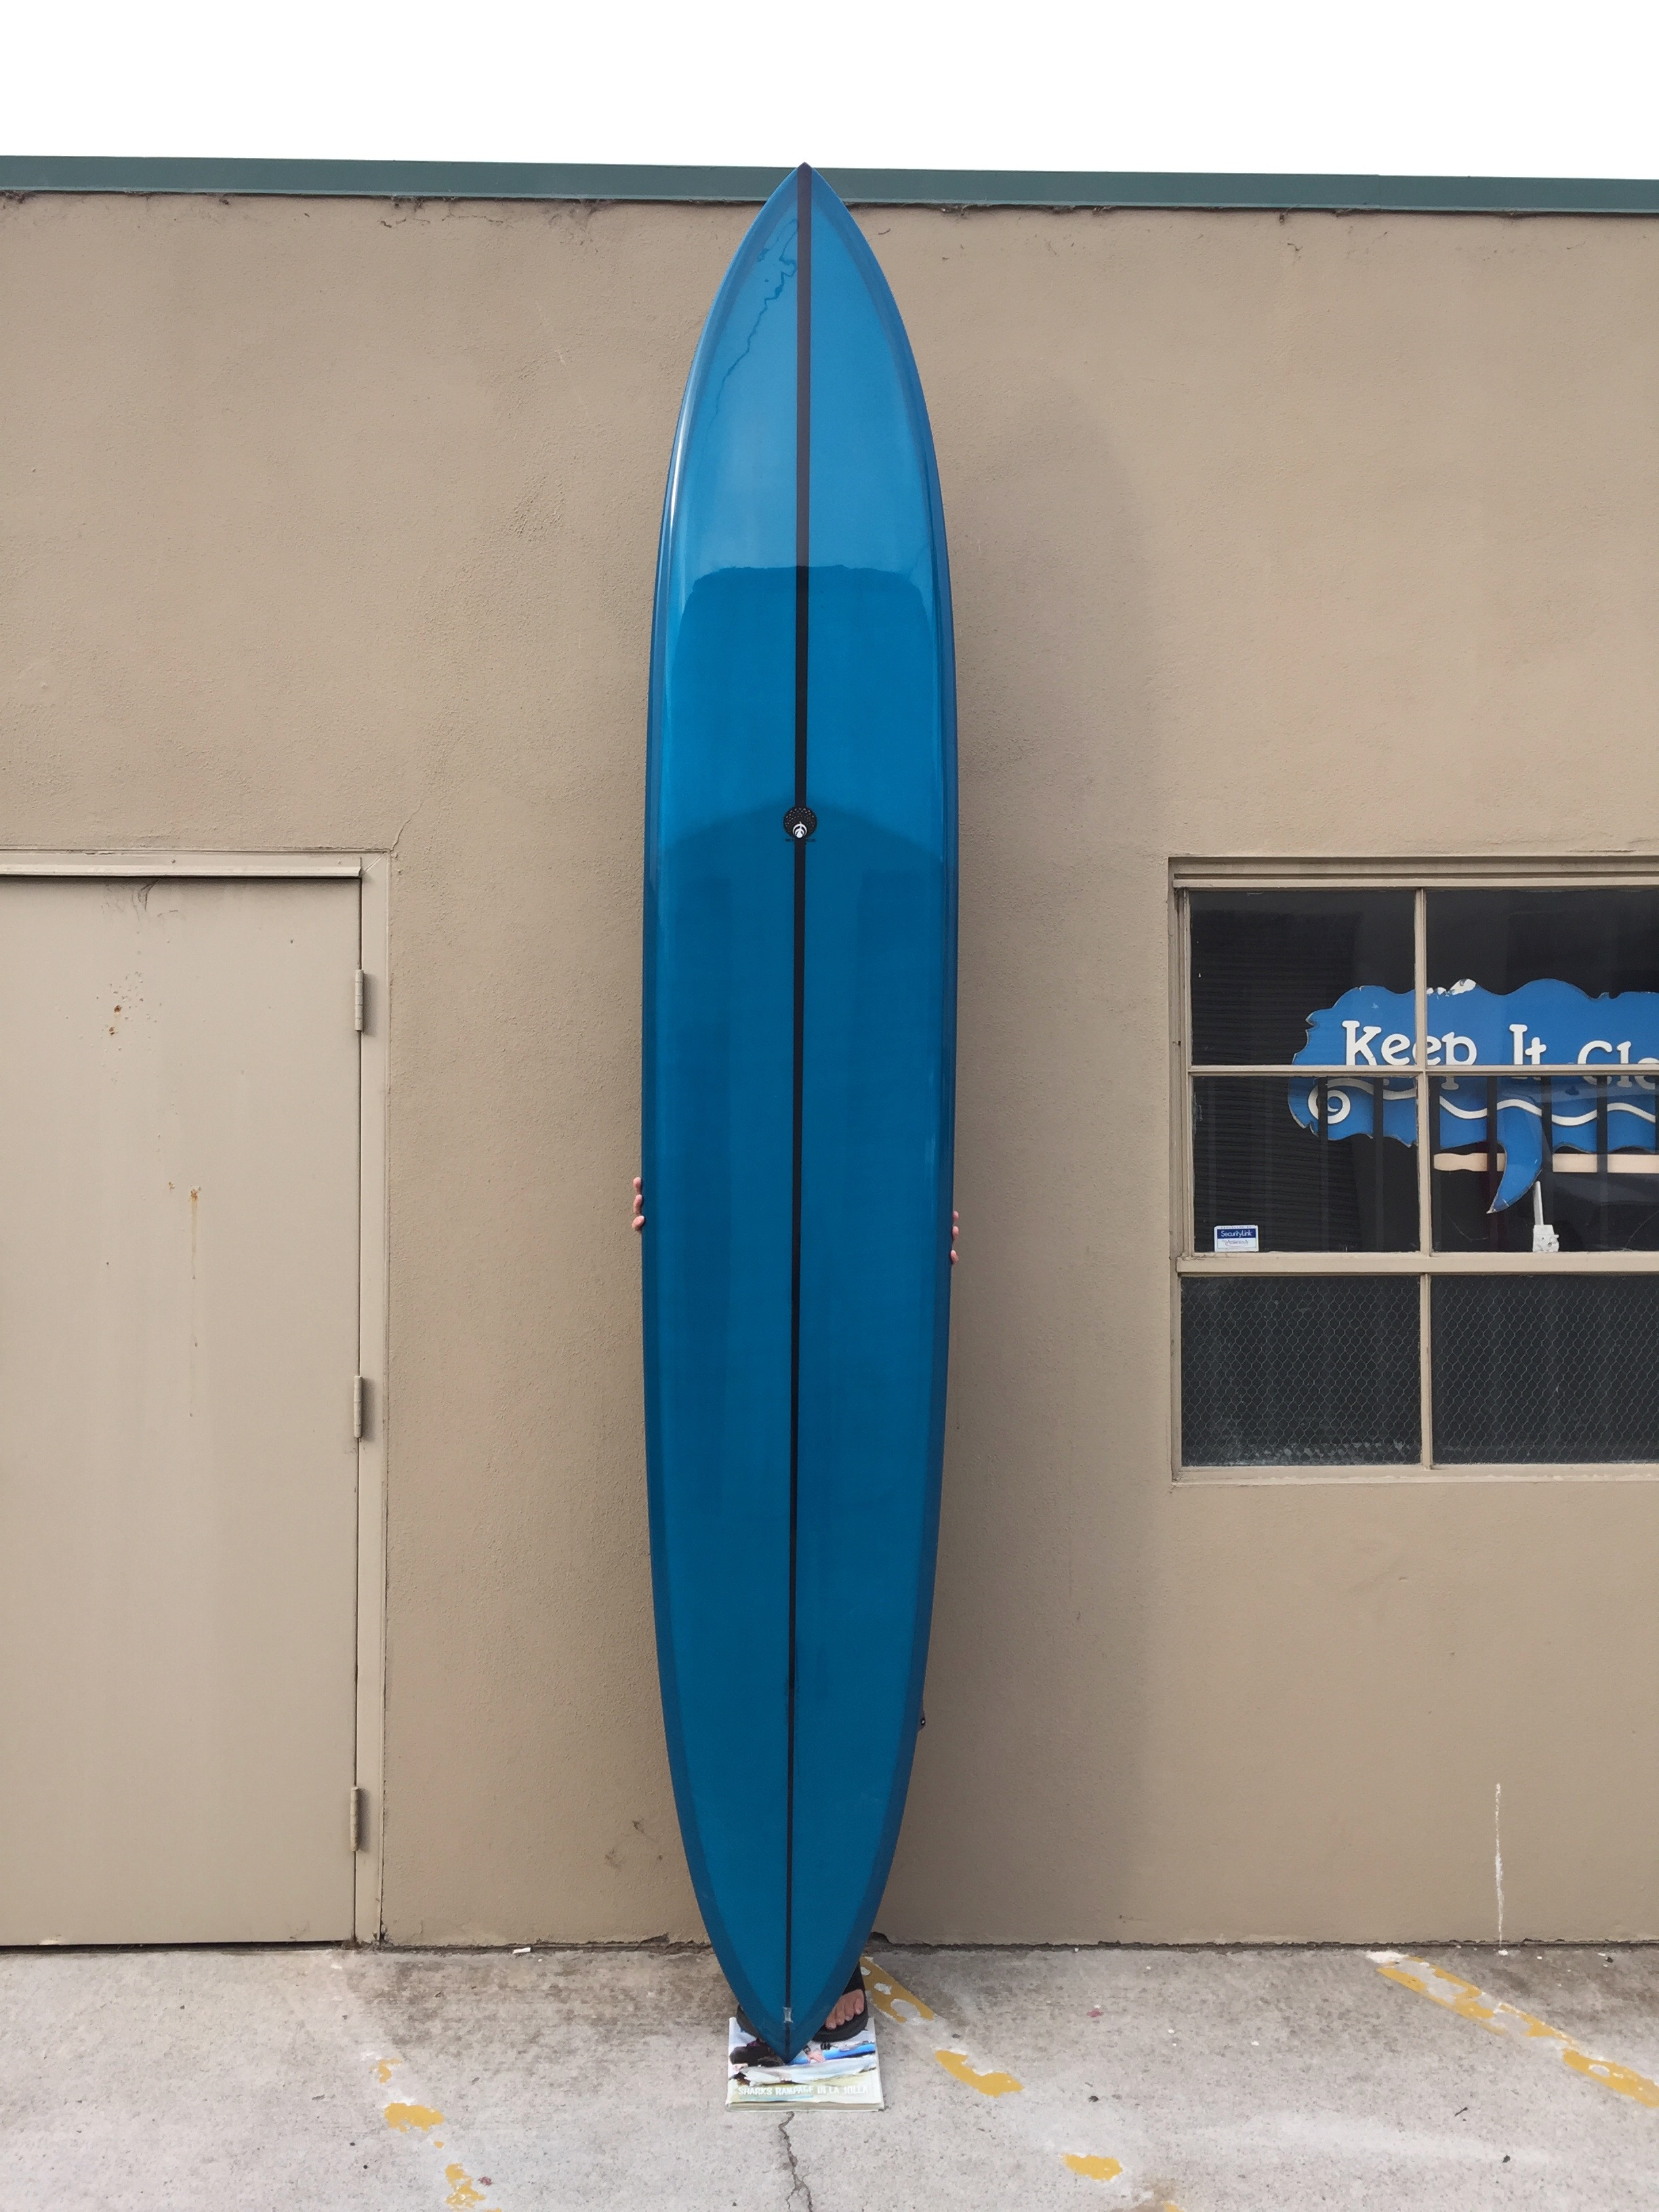 - This is similar to the Eagle with a more pulled in nose and tail for steeper faster waves.